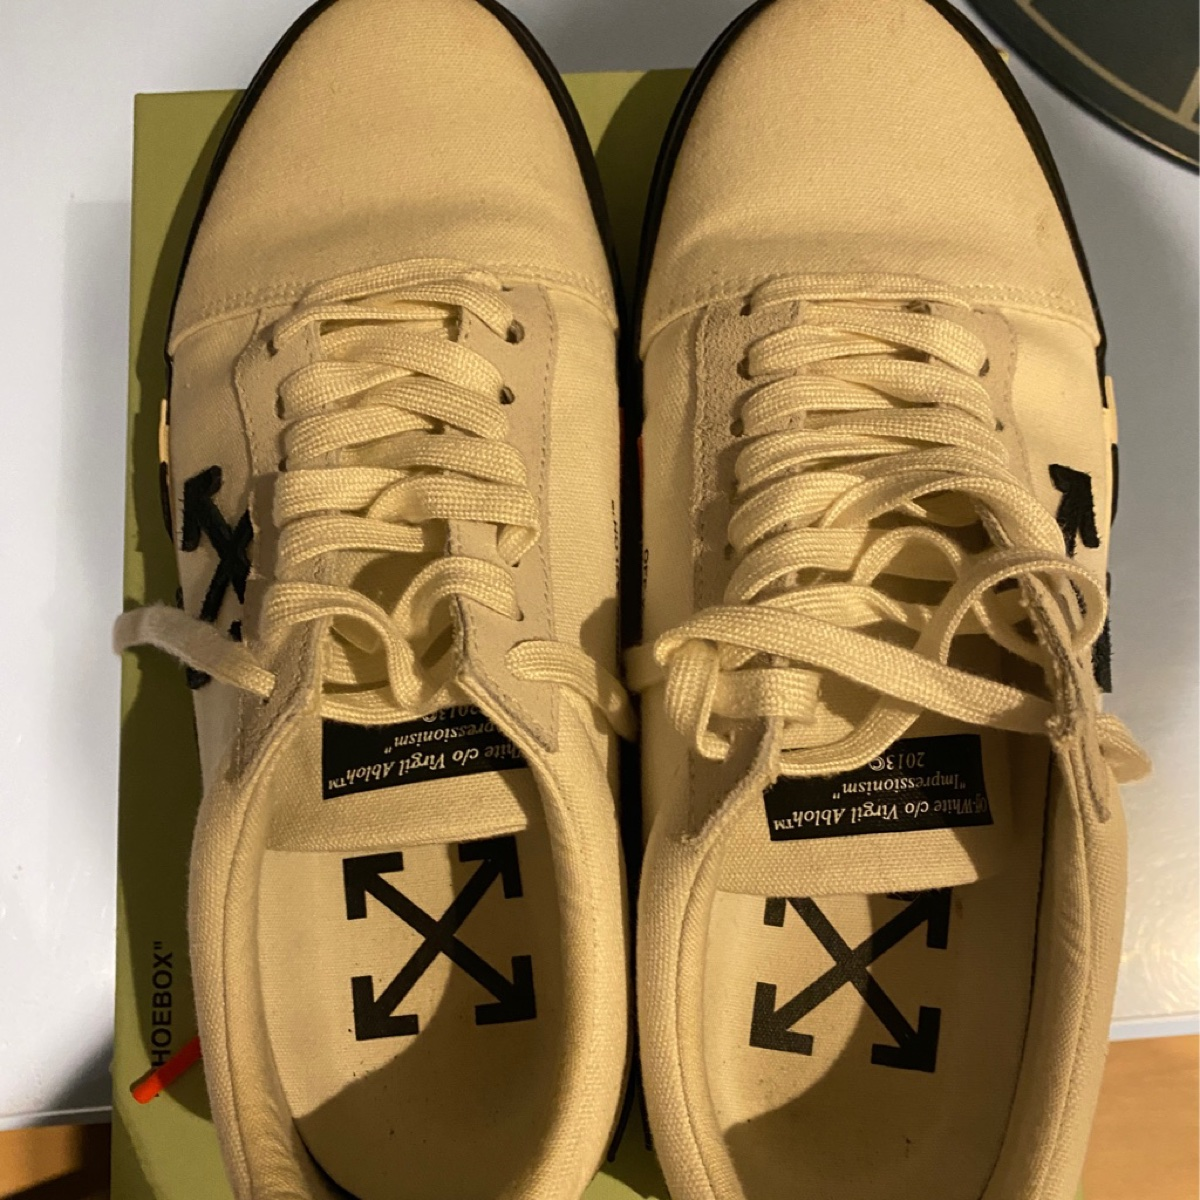 Offwhite low-top Sneakers